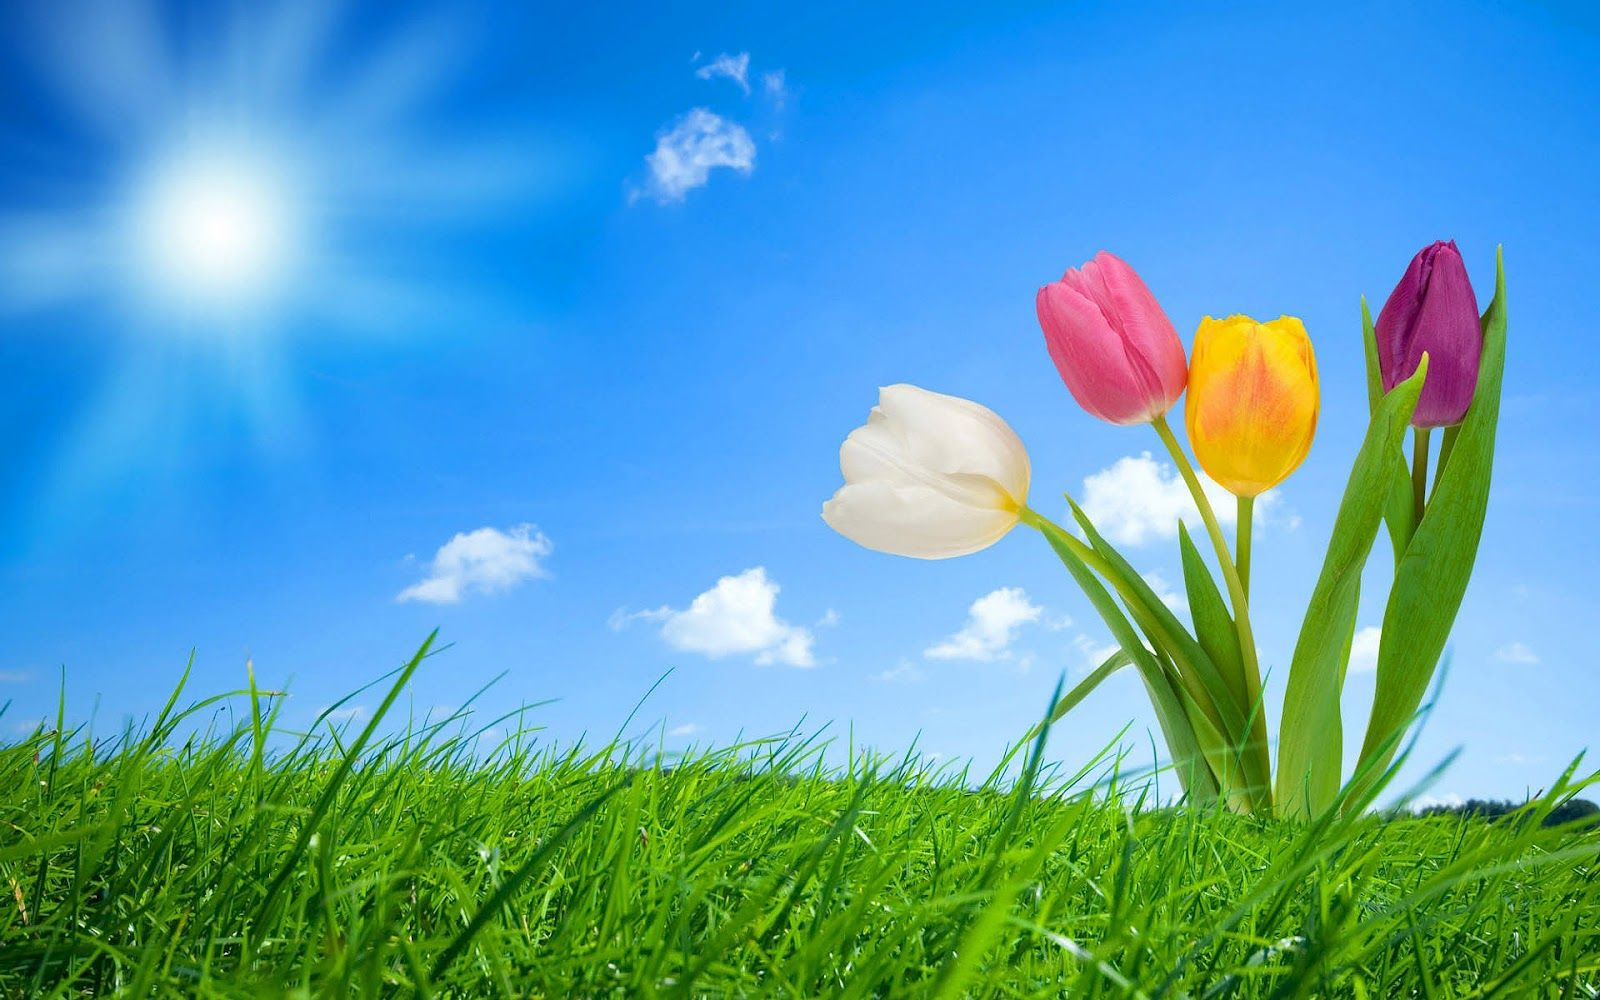 Spring Pictures For Desktop Best Top Desktop Spring